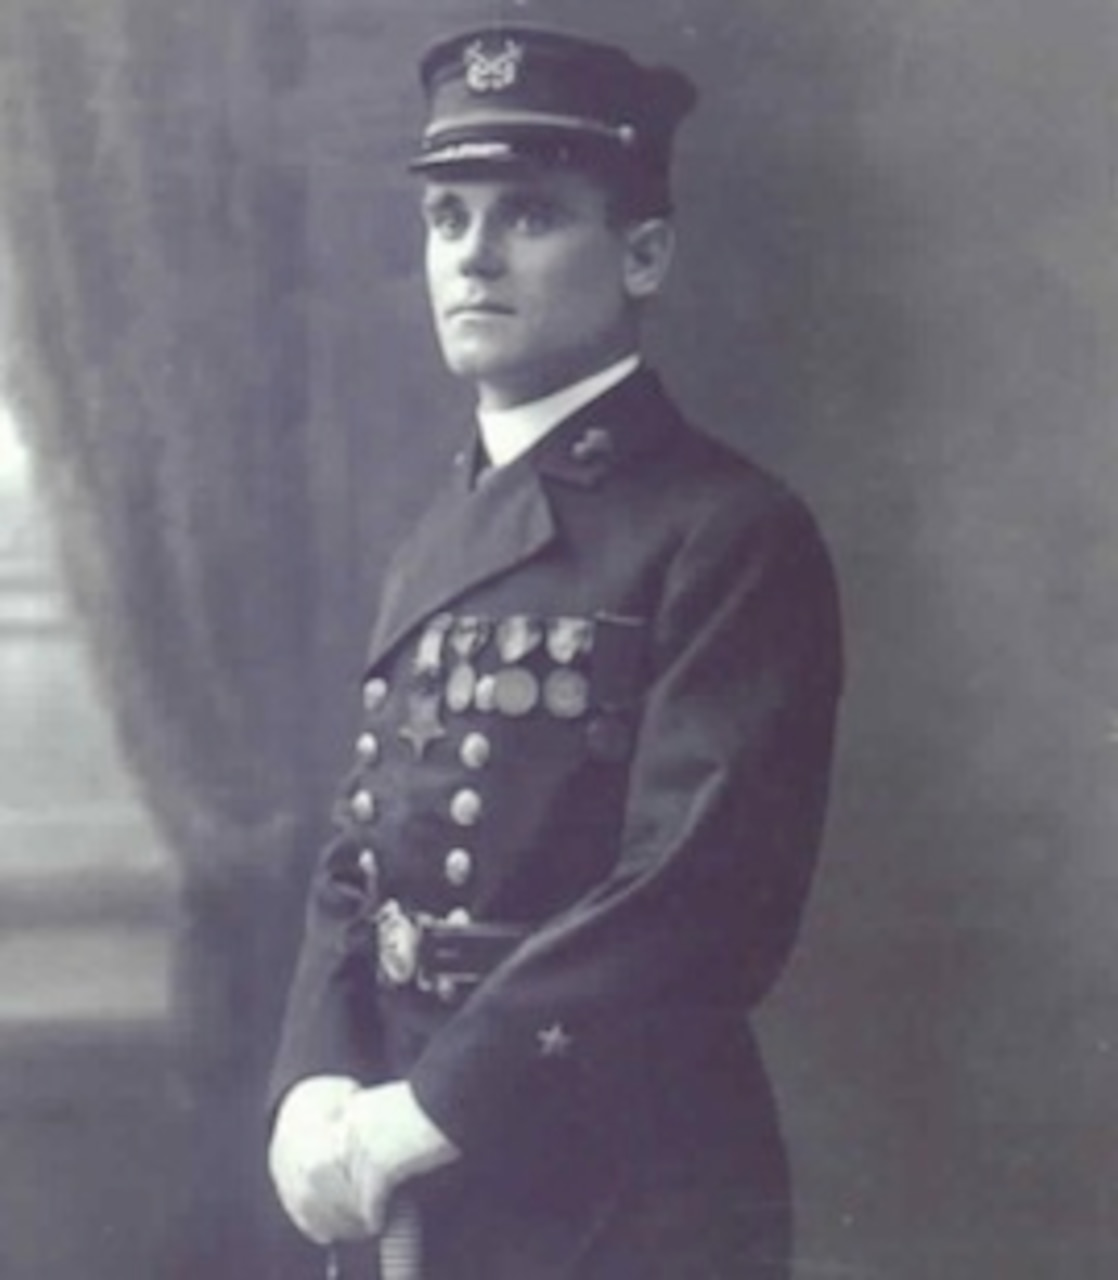 A man in a uniform stands for a photo.